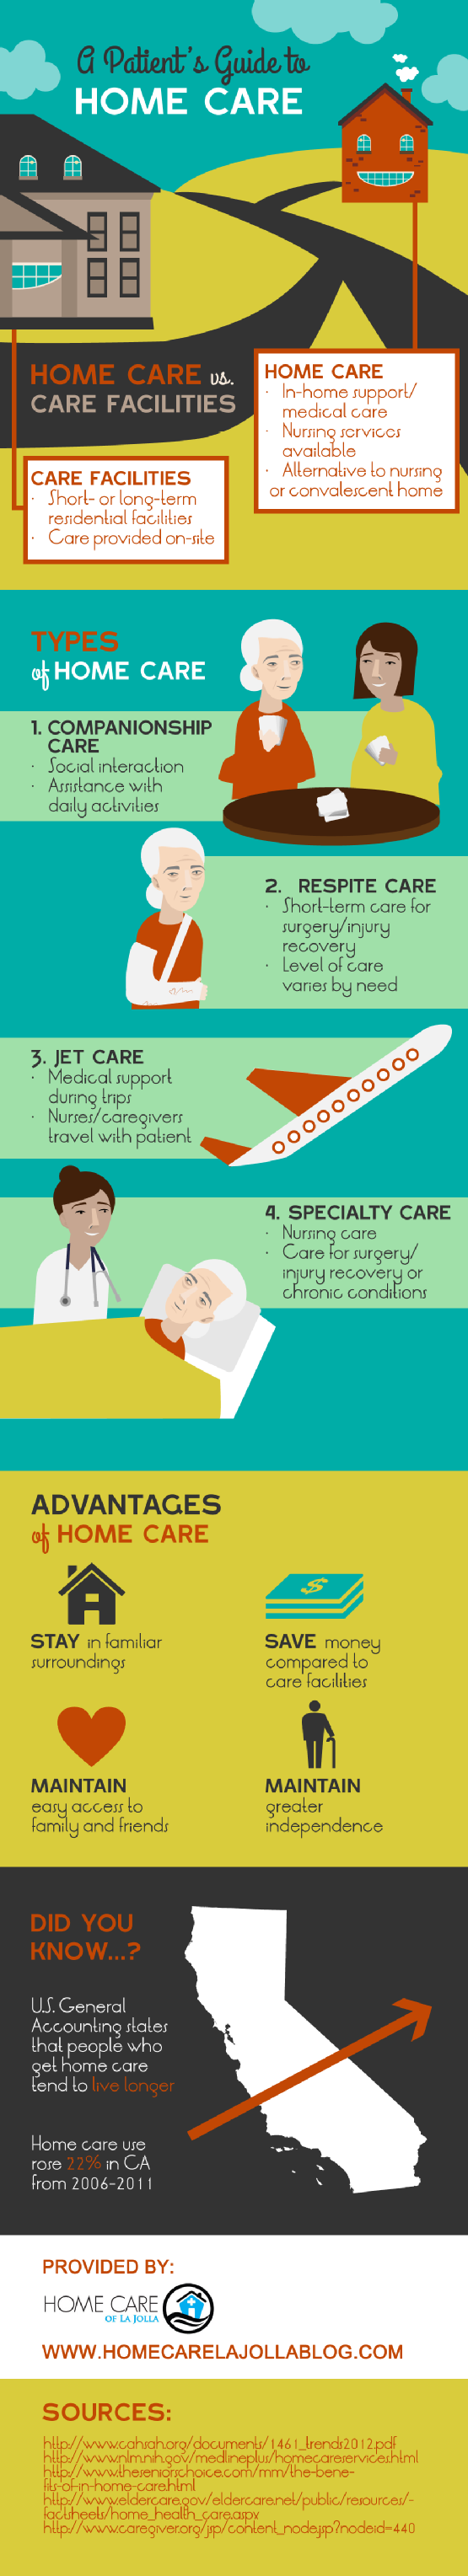 A Patient's Guide to Home Care Infographic